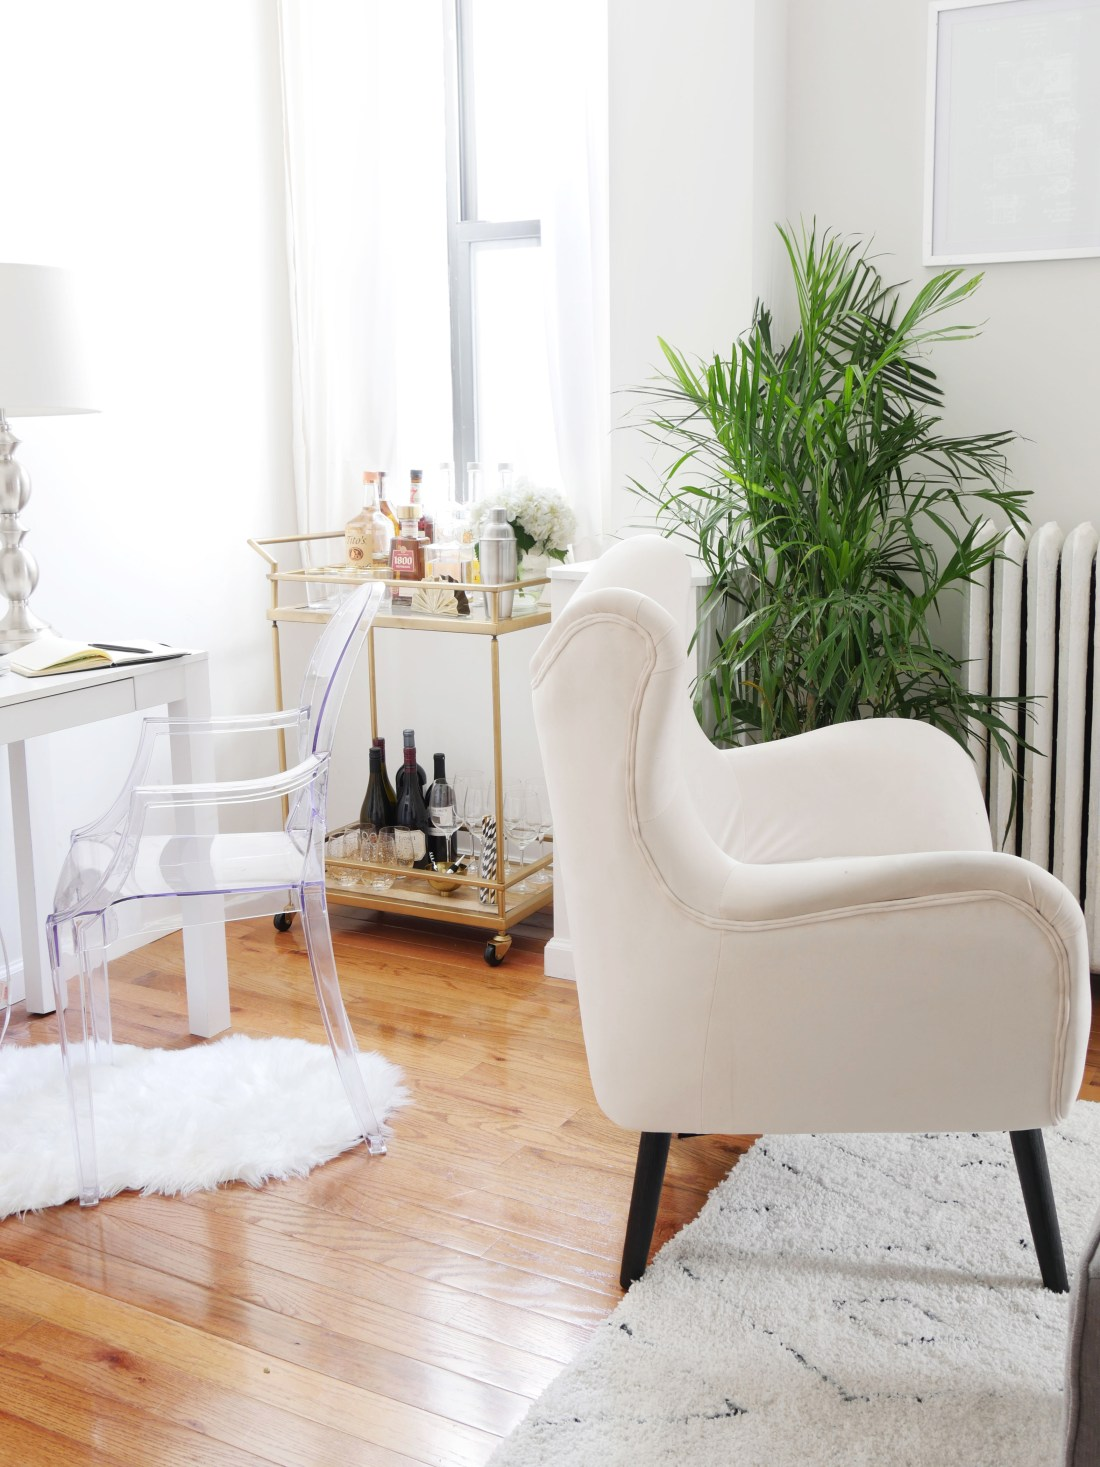 If you're a renter, you should be doing all of these things in your home! #budgetfriendlydecoratingideas #decoratingideas #decoratingideasforapartments #rentalhomedecoratingdiy #smalllivingroomideas #smallapartmentdecorating